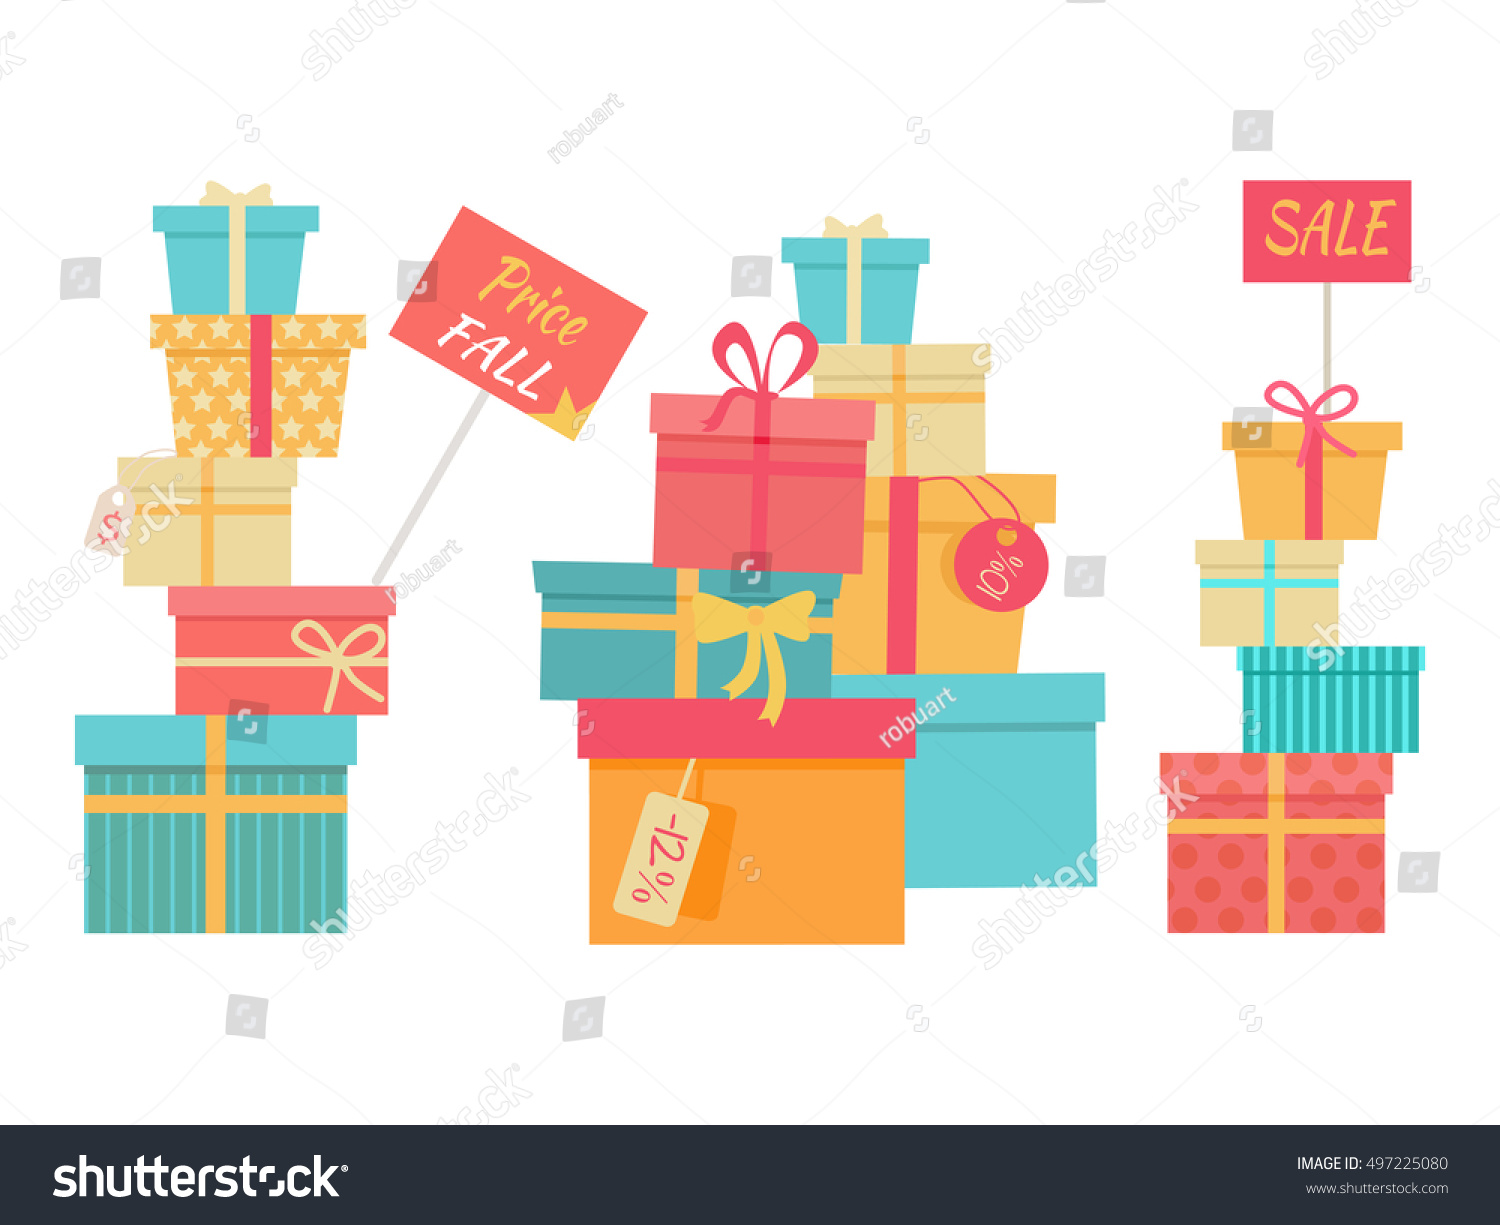 Price fall sale concept set big stock vector 497225080 shutterstock price fall sale concept set big piles of colorful wrapped gift boxes mountain gifts buycottarizona Gallery